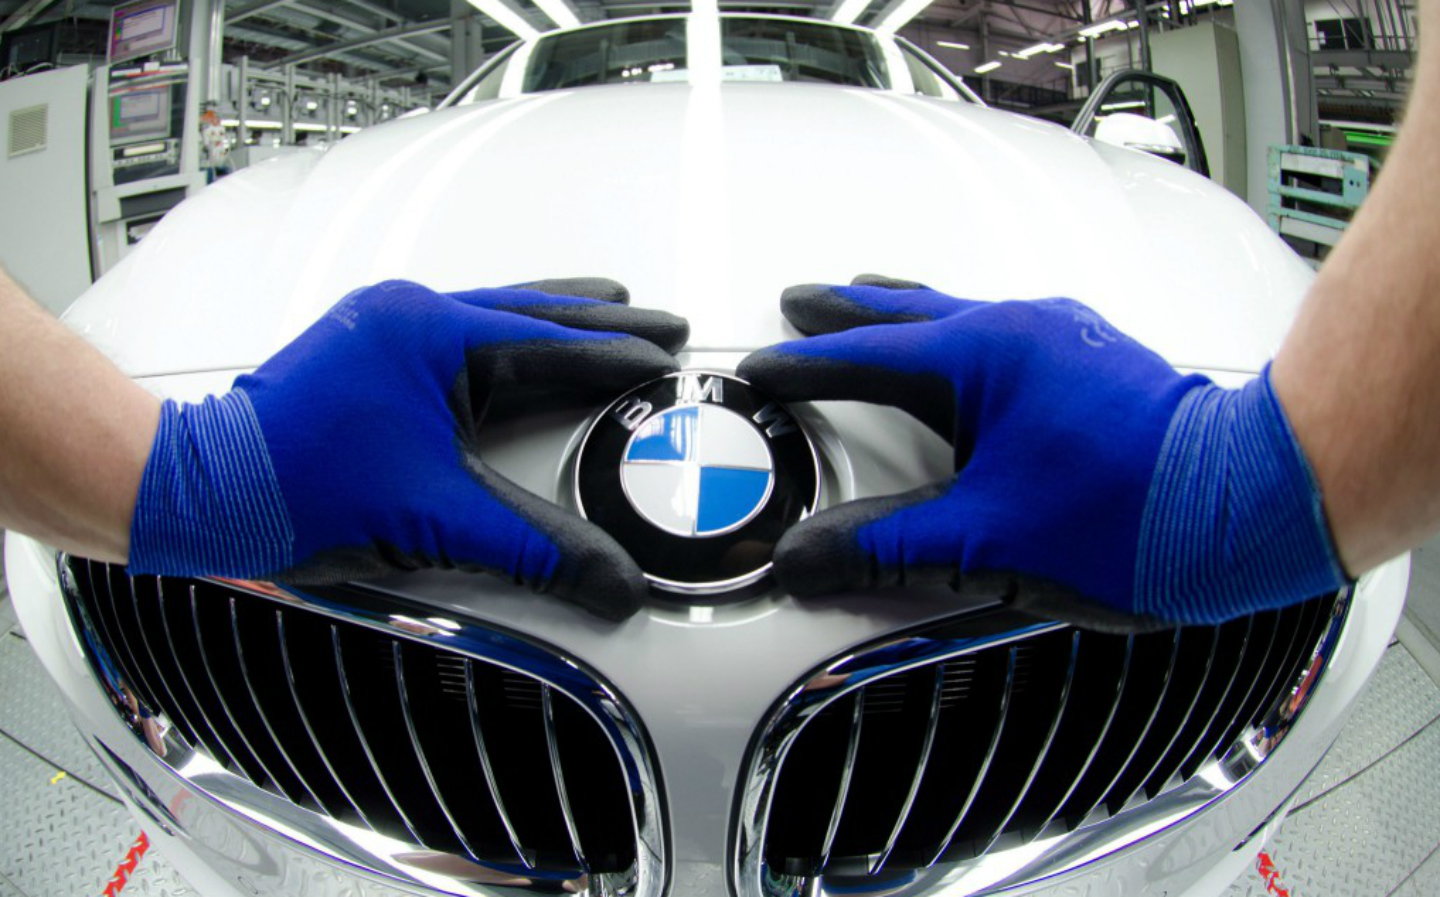 Fire breaks out in BMW factory in southern Germany: report